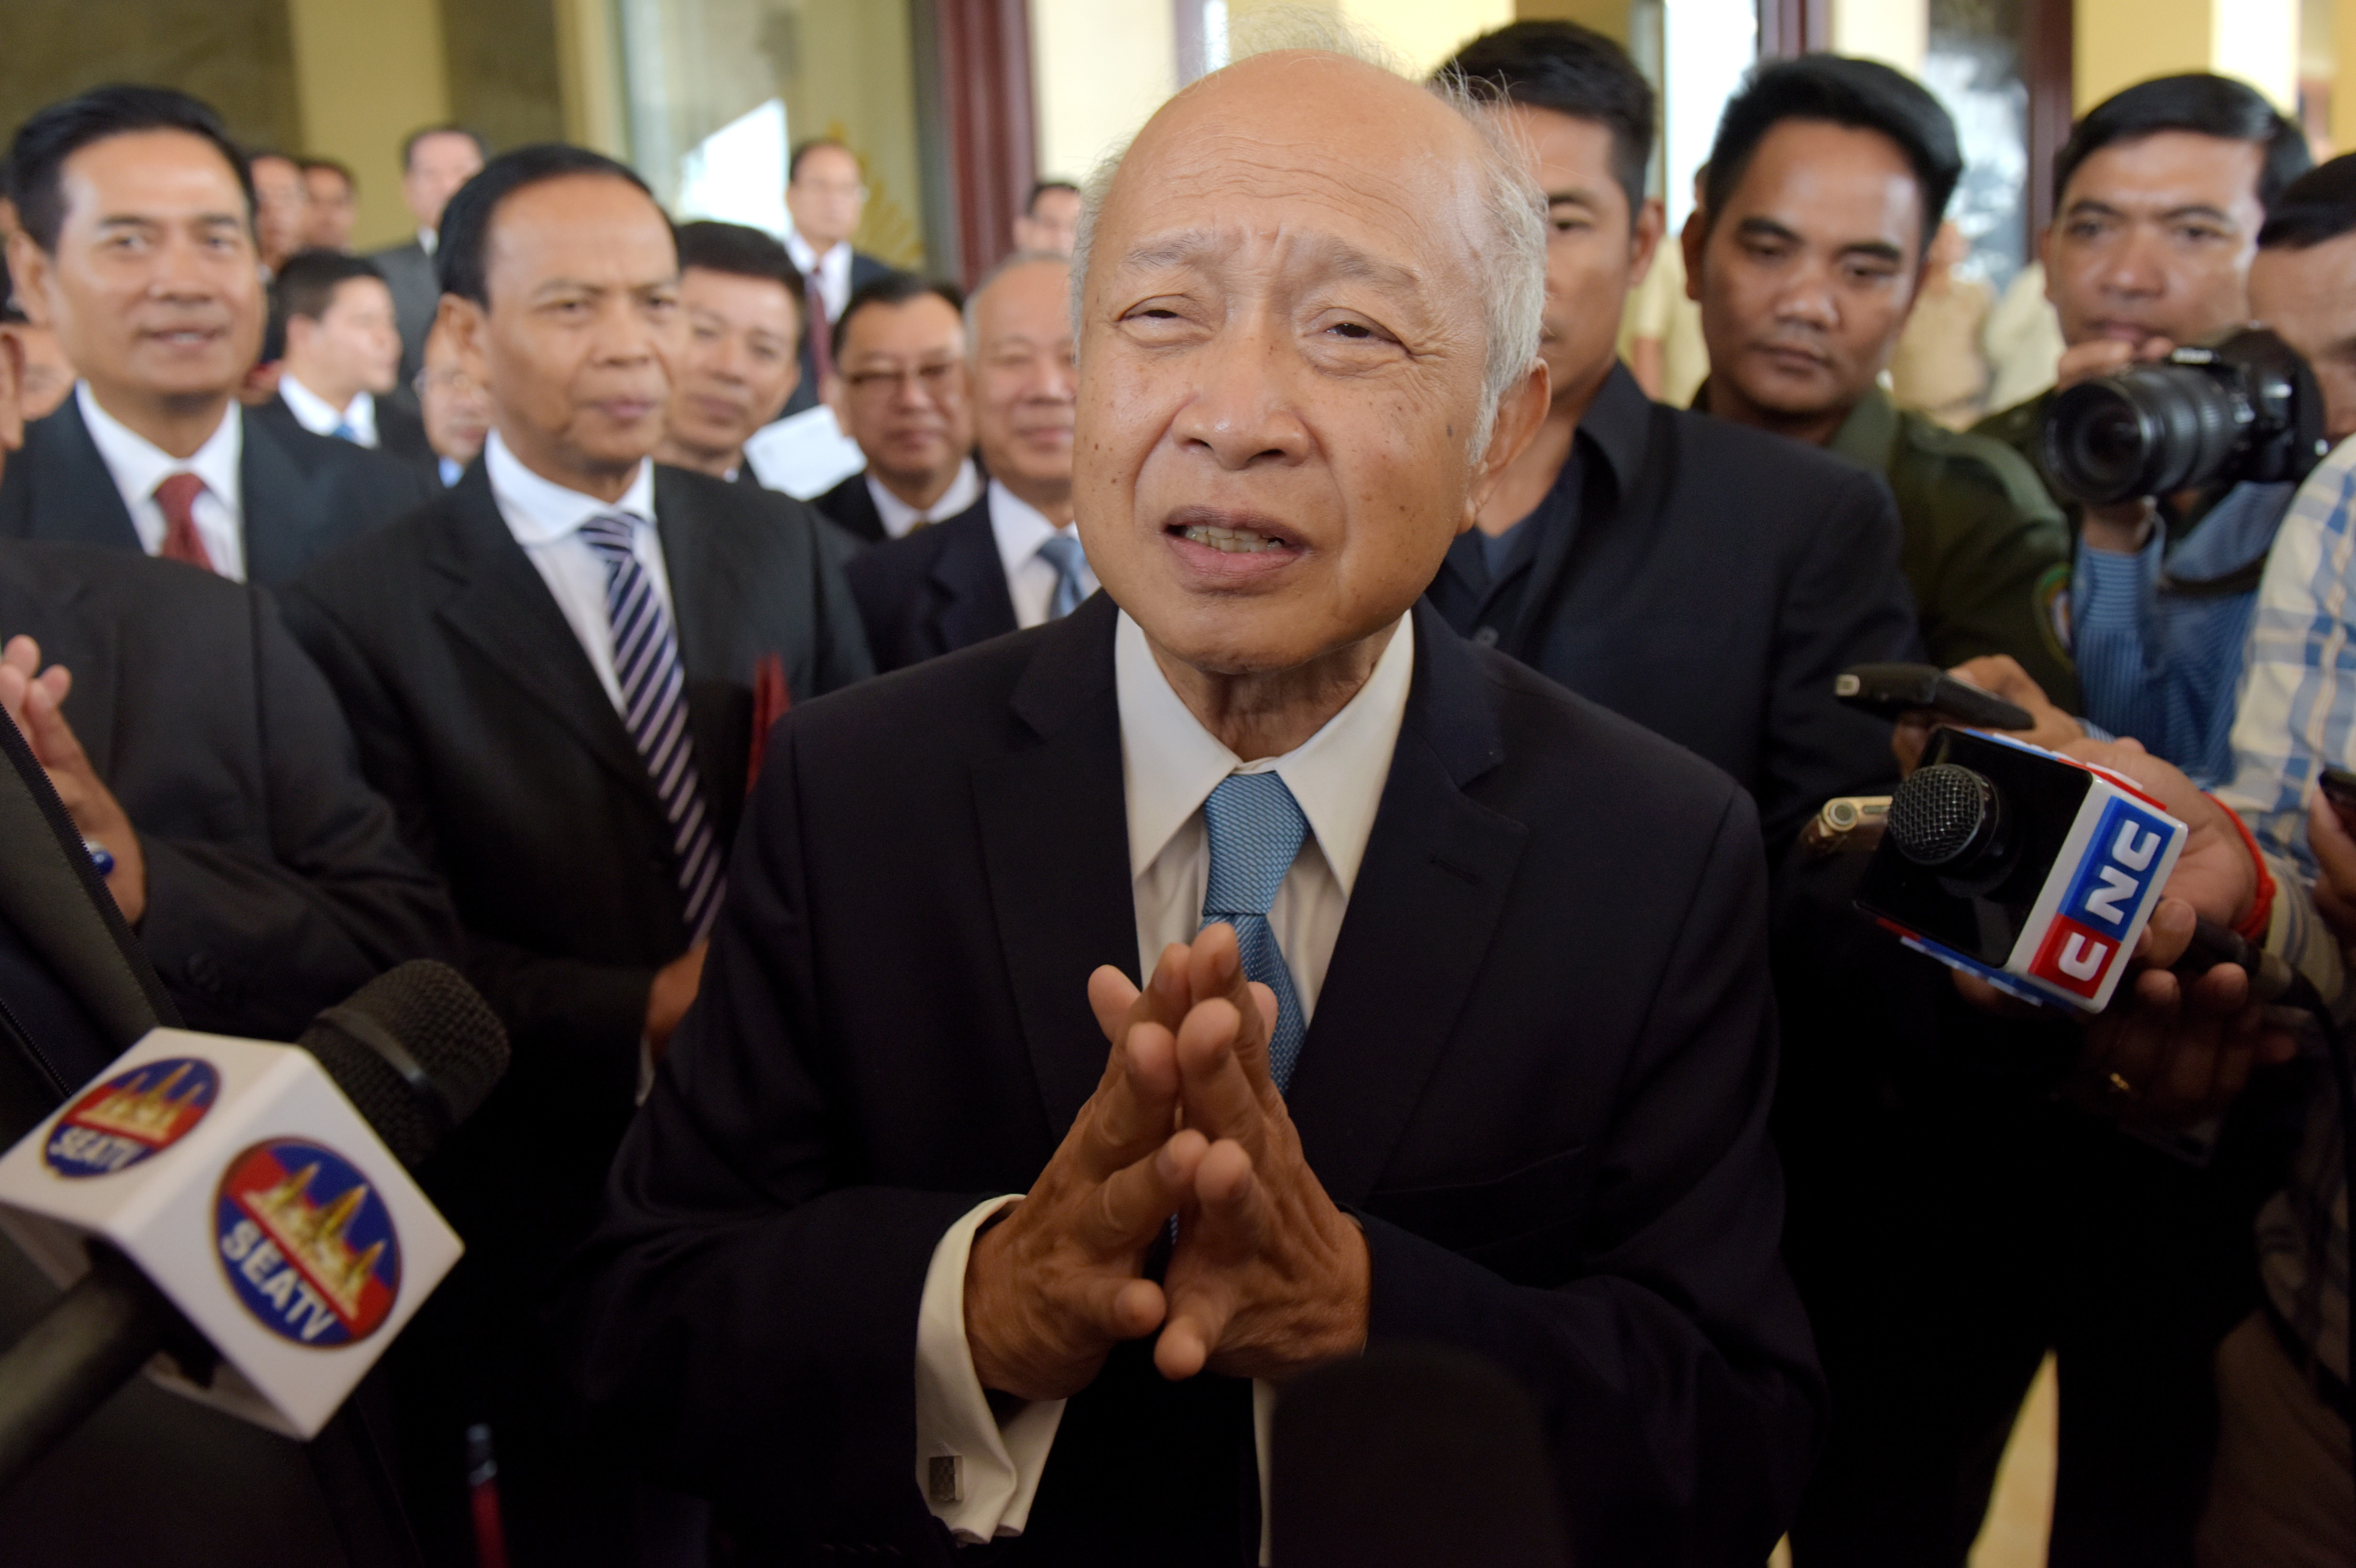 Cambodia's Prince Norodom Ranariddh at the National Assembly building in Phnom Penh on Nov. 27, 2017.